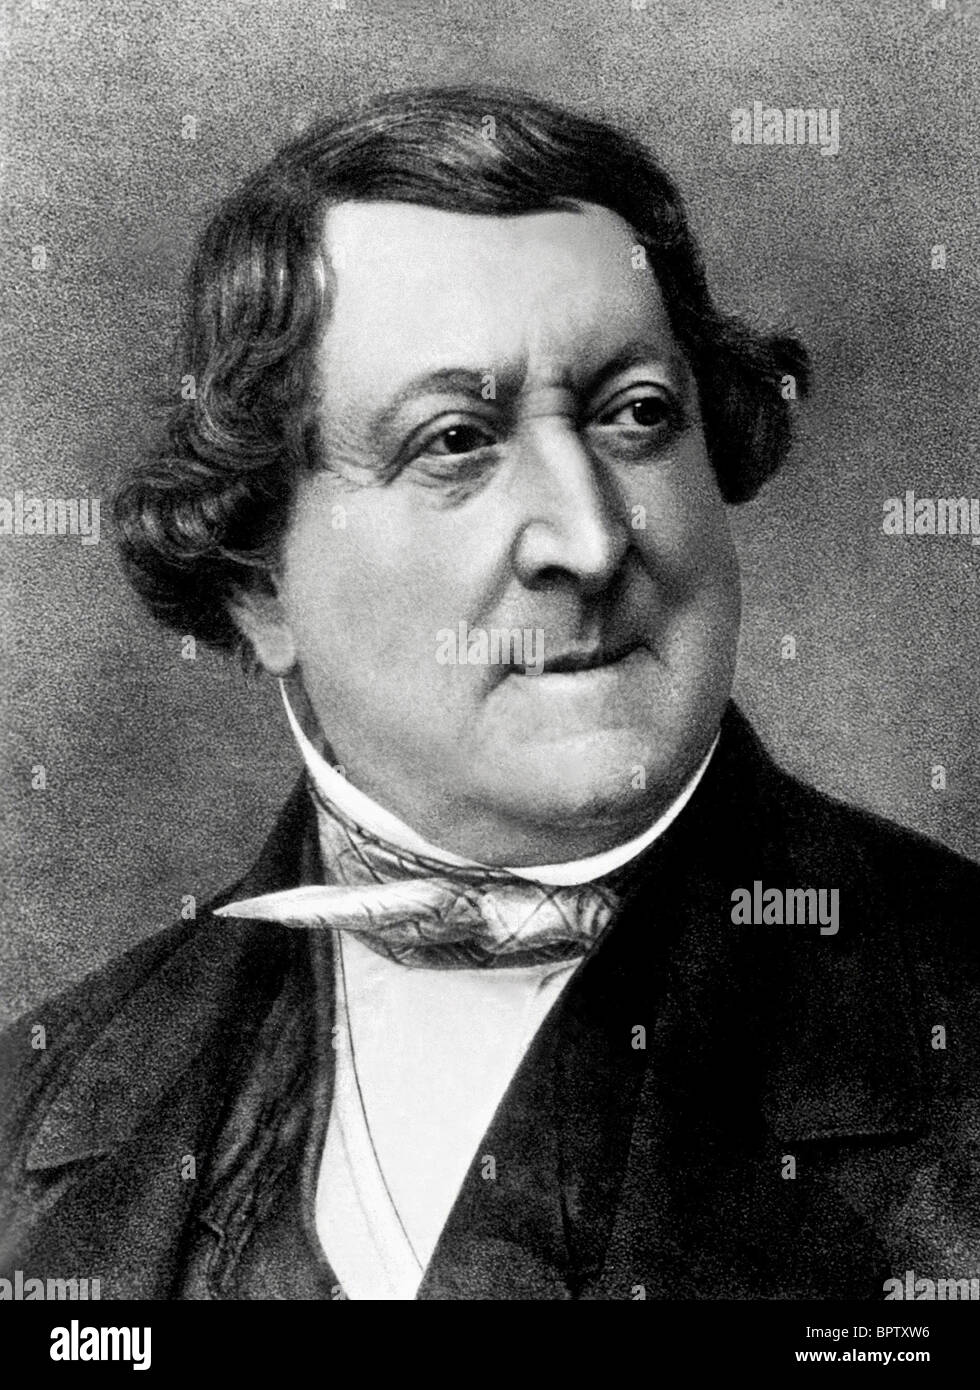 GIOACCHINO ROSSINI MUSIC COMPOSER (1830) - Stock Image